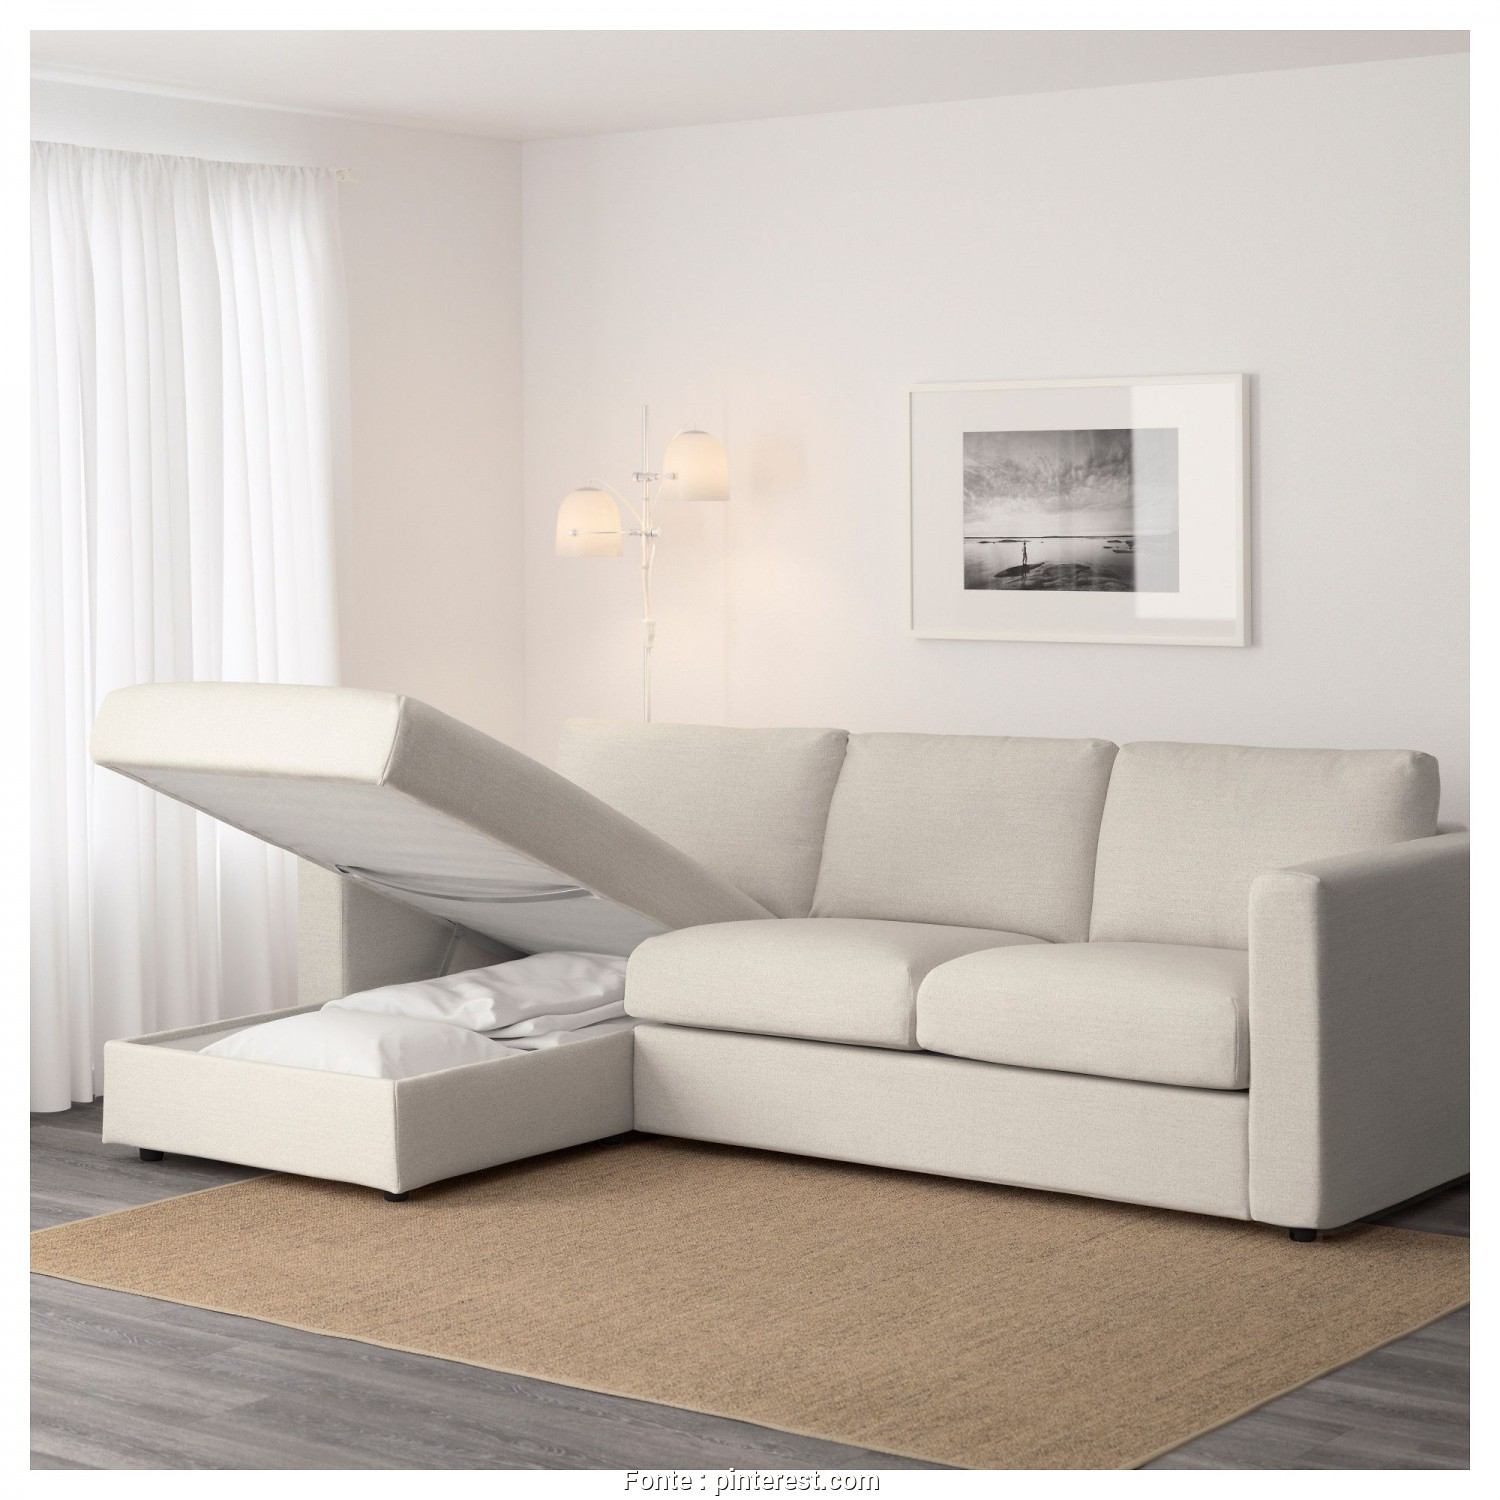 Divano Vimle 4 Posti Ikea, Esotico IKEA, VIMLE Sofa With Chaise, Gunnared Beige, Products In 2019